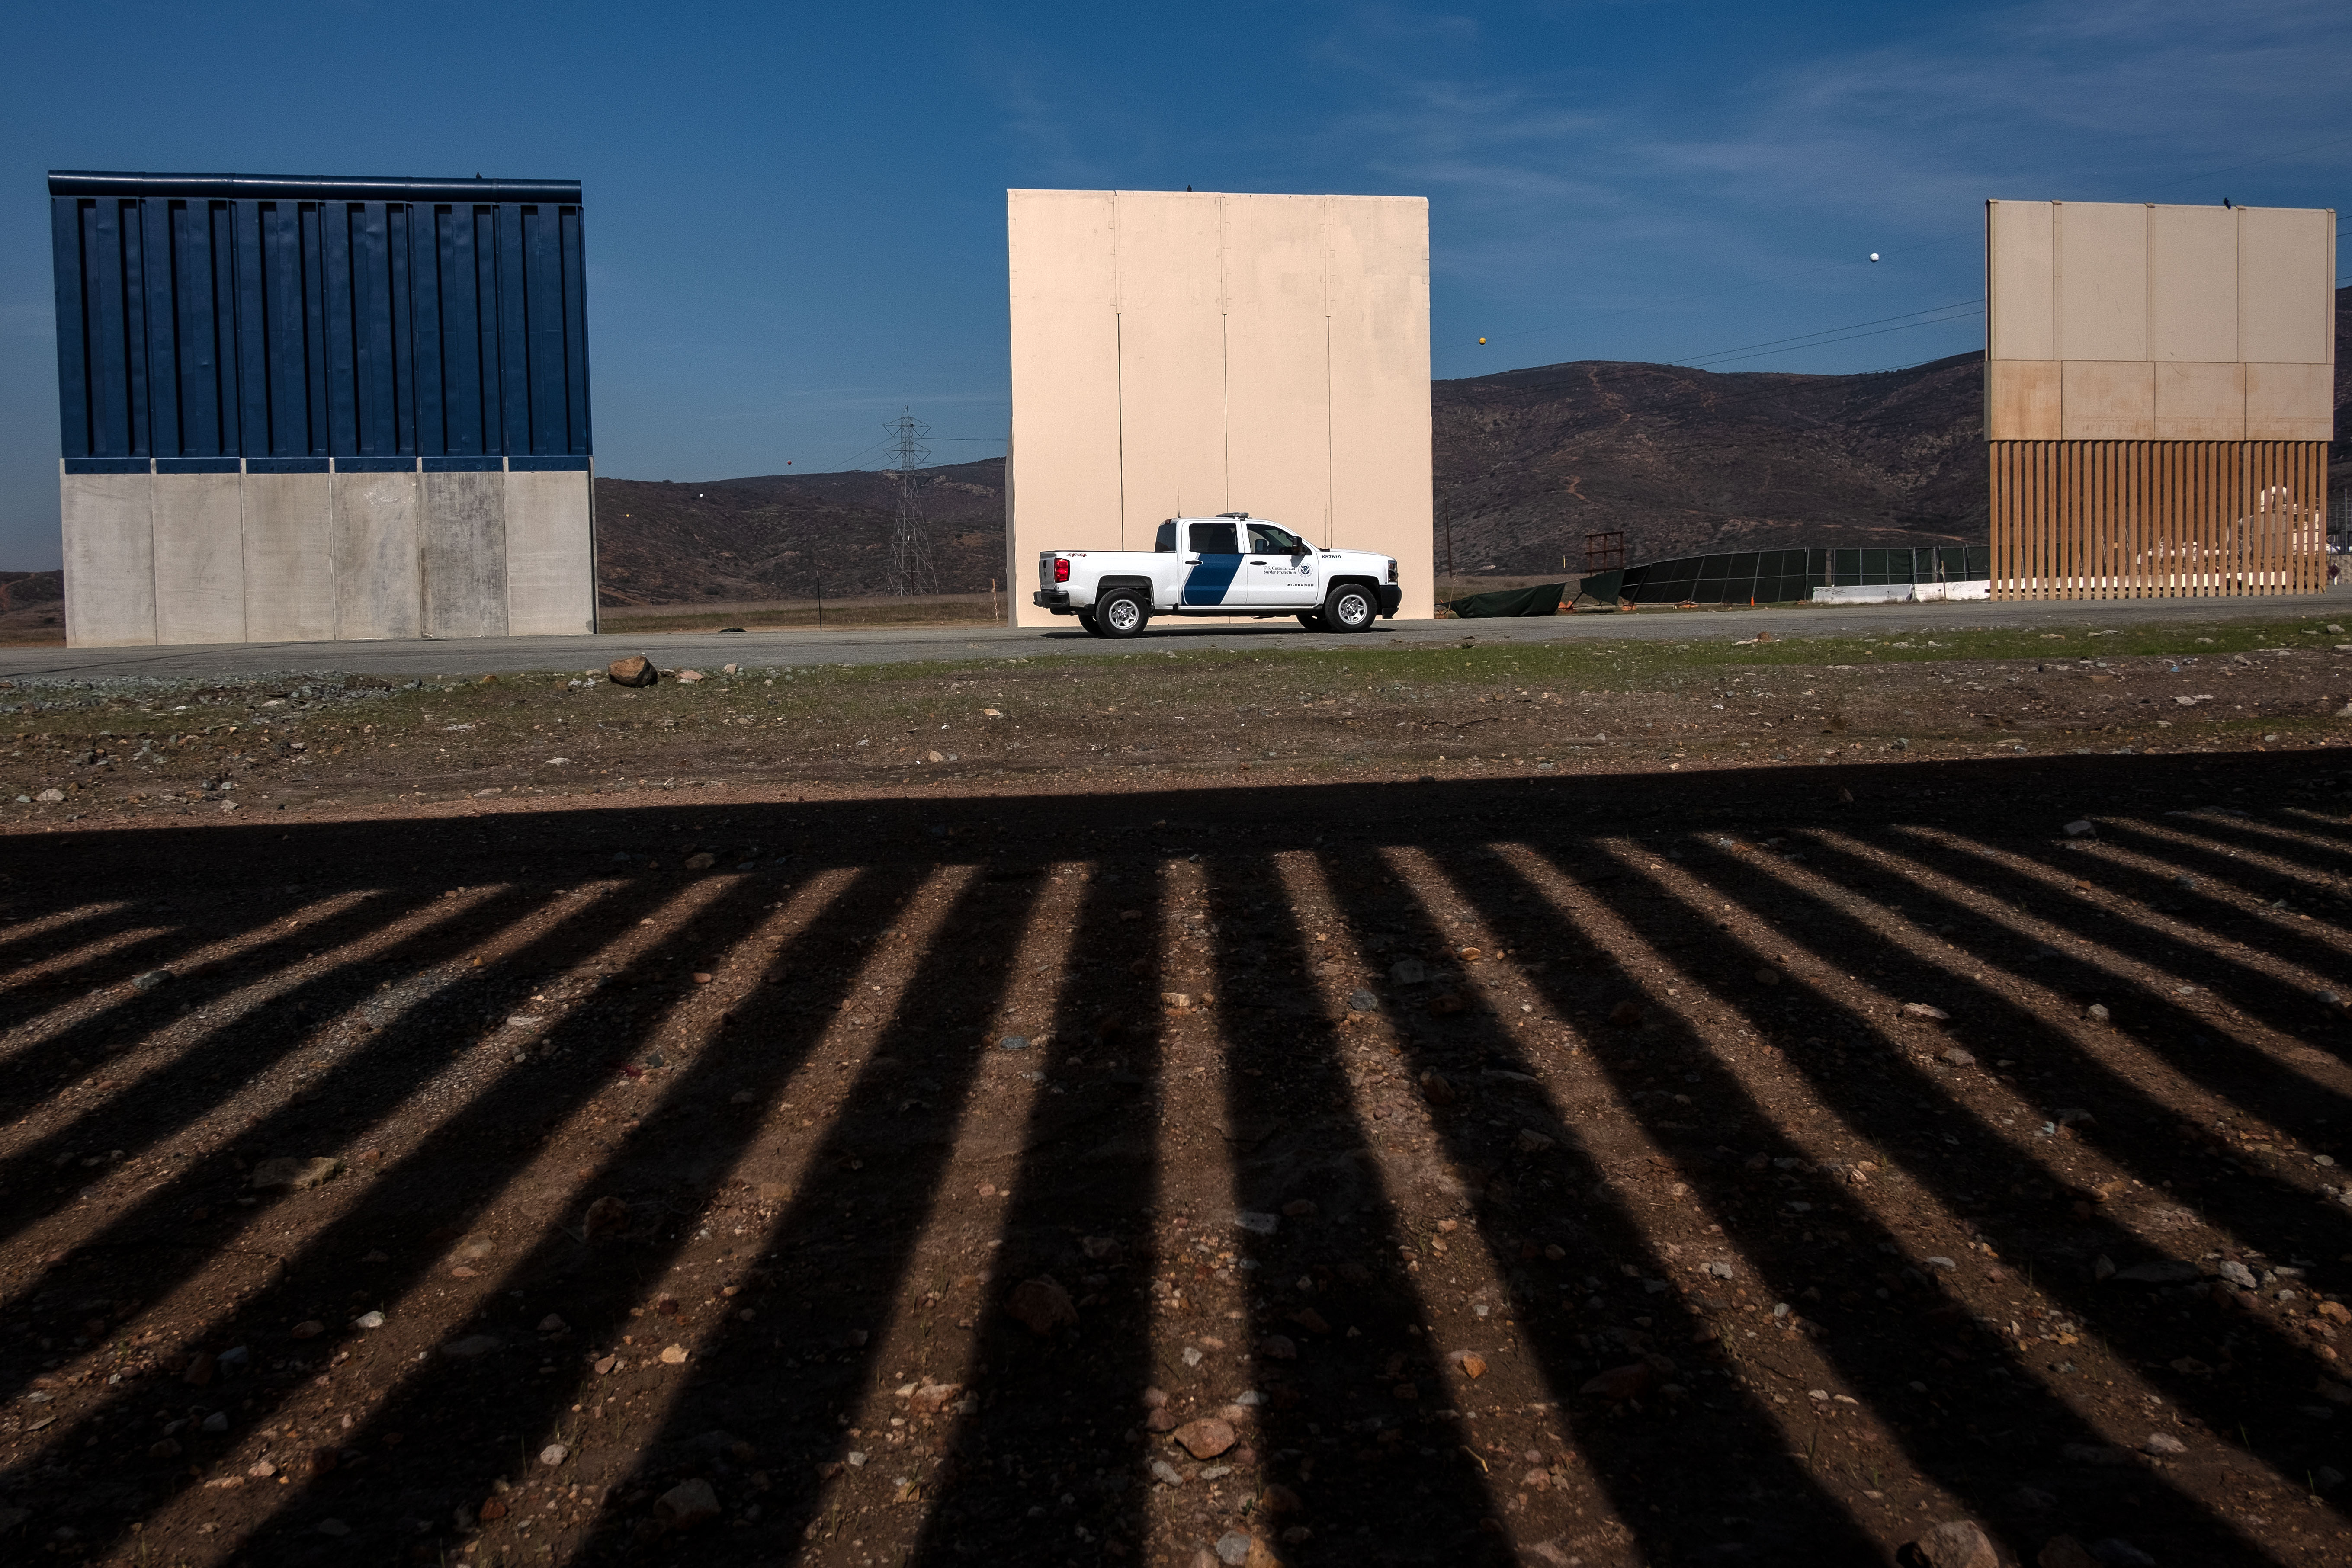 A Customs and Border protection vehicle passes by US President Donald Trump's wall prototypes, as seen from behind the Mexico-US border fence in Tijuana, Baja California state, Mexico on December 12, 2018. - As thousands of Central American migrants, mostly Hondurans, have trekked for over a month in the hopes of reaching the United States, President Donald Trump told Democratic leaders at the White House on Tuesday that he will shut down the US government because they refuse to approve billions of dollars in funding for his controversial Mexico border wall. (Photo by GUILLERMO ARIAS/AFP/Getty Images)